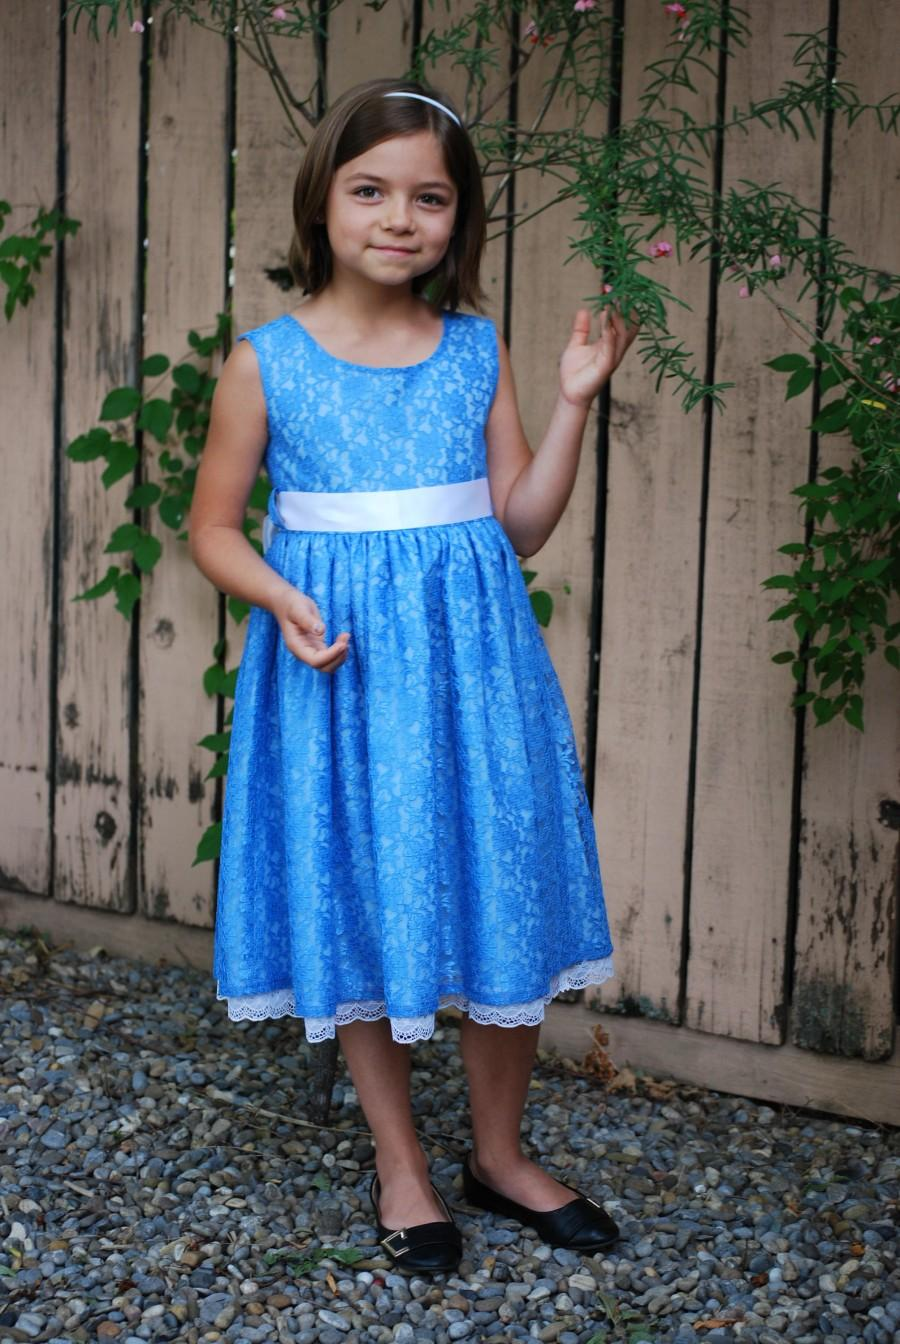 Свадьба - Girls Blue Lace Summer Wedding Outfit, Special Occasion Celebration Dress, Size 7  Sunday Church Dress, Formal Party Dress.